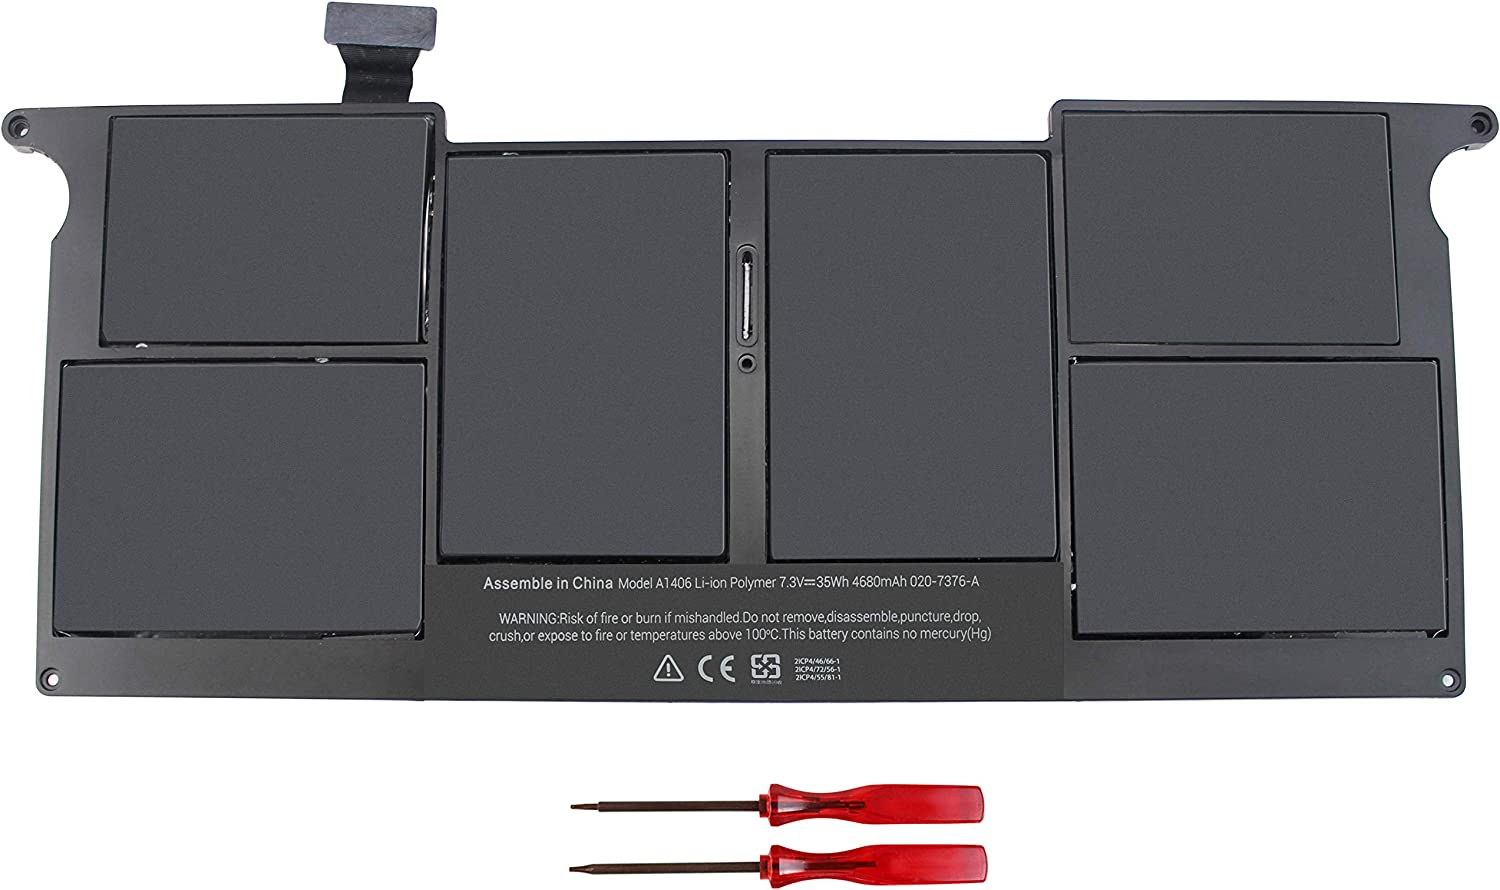 A1406 A1370 A1465 Battery for MacBook Air 11'' A1406 A1370 A1465 A1495 (Mid 2011 2012 2013 Early 2014 2015 Version) fits: MC968 MD223 MD711 020-7376-A 020-7377-A 7.3V 35WH